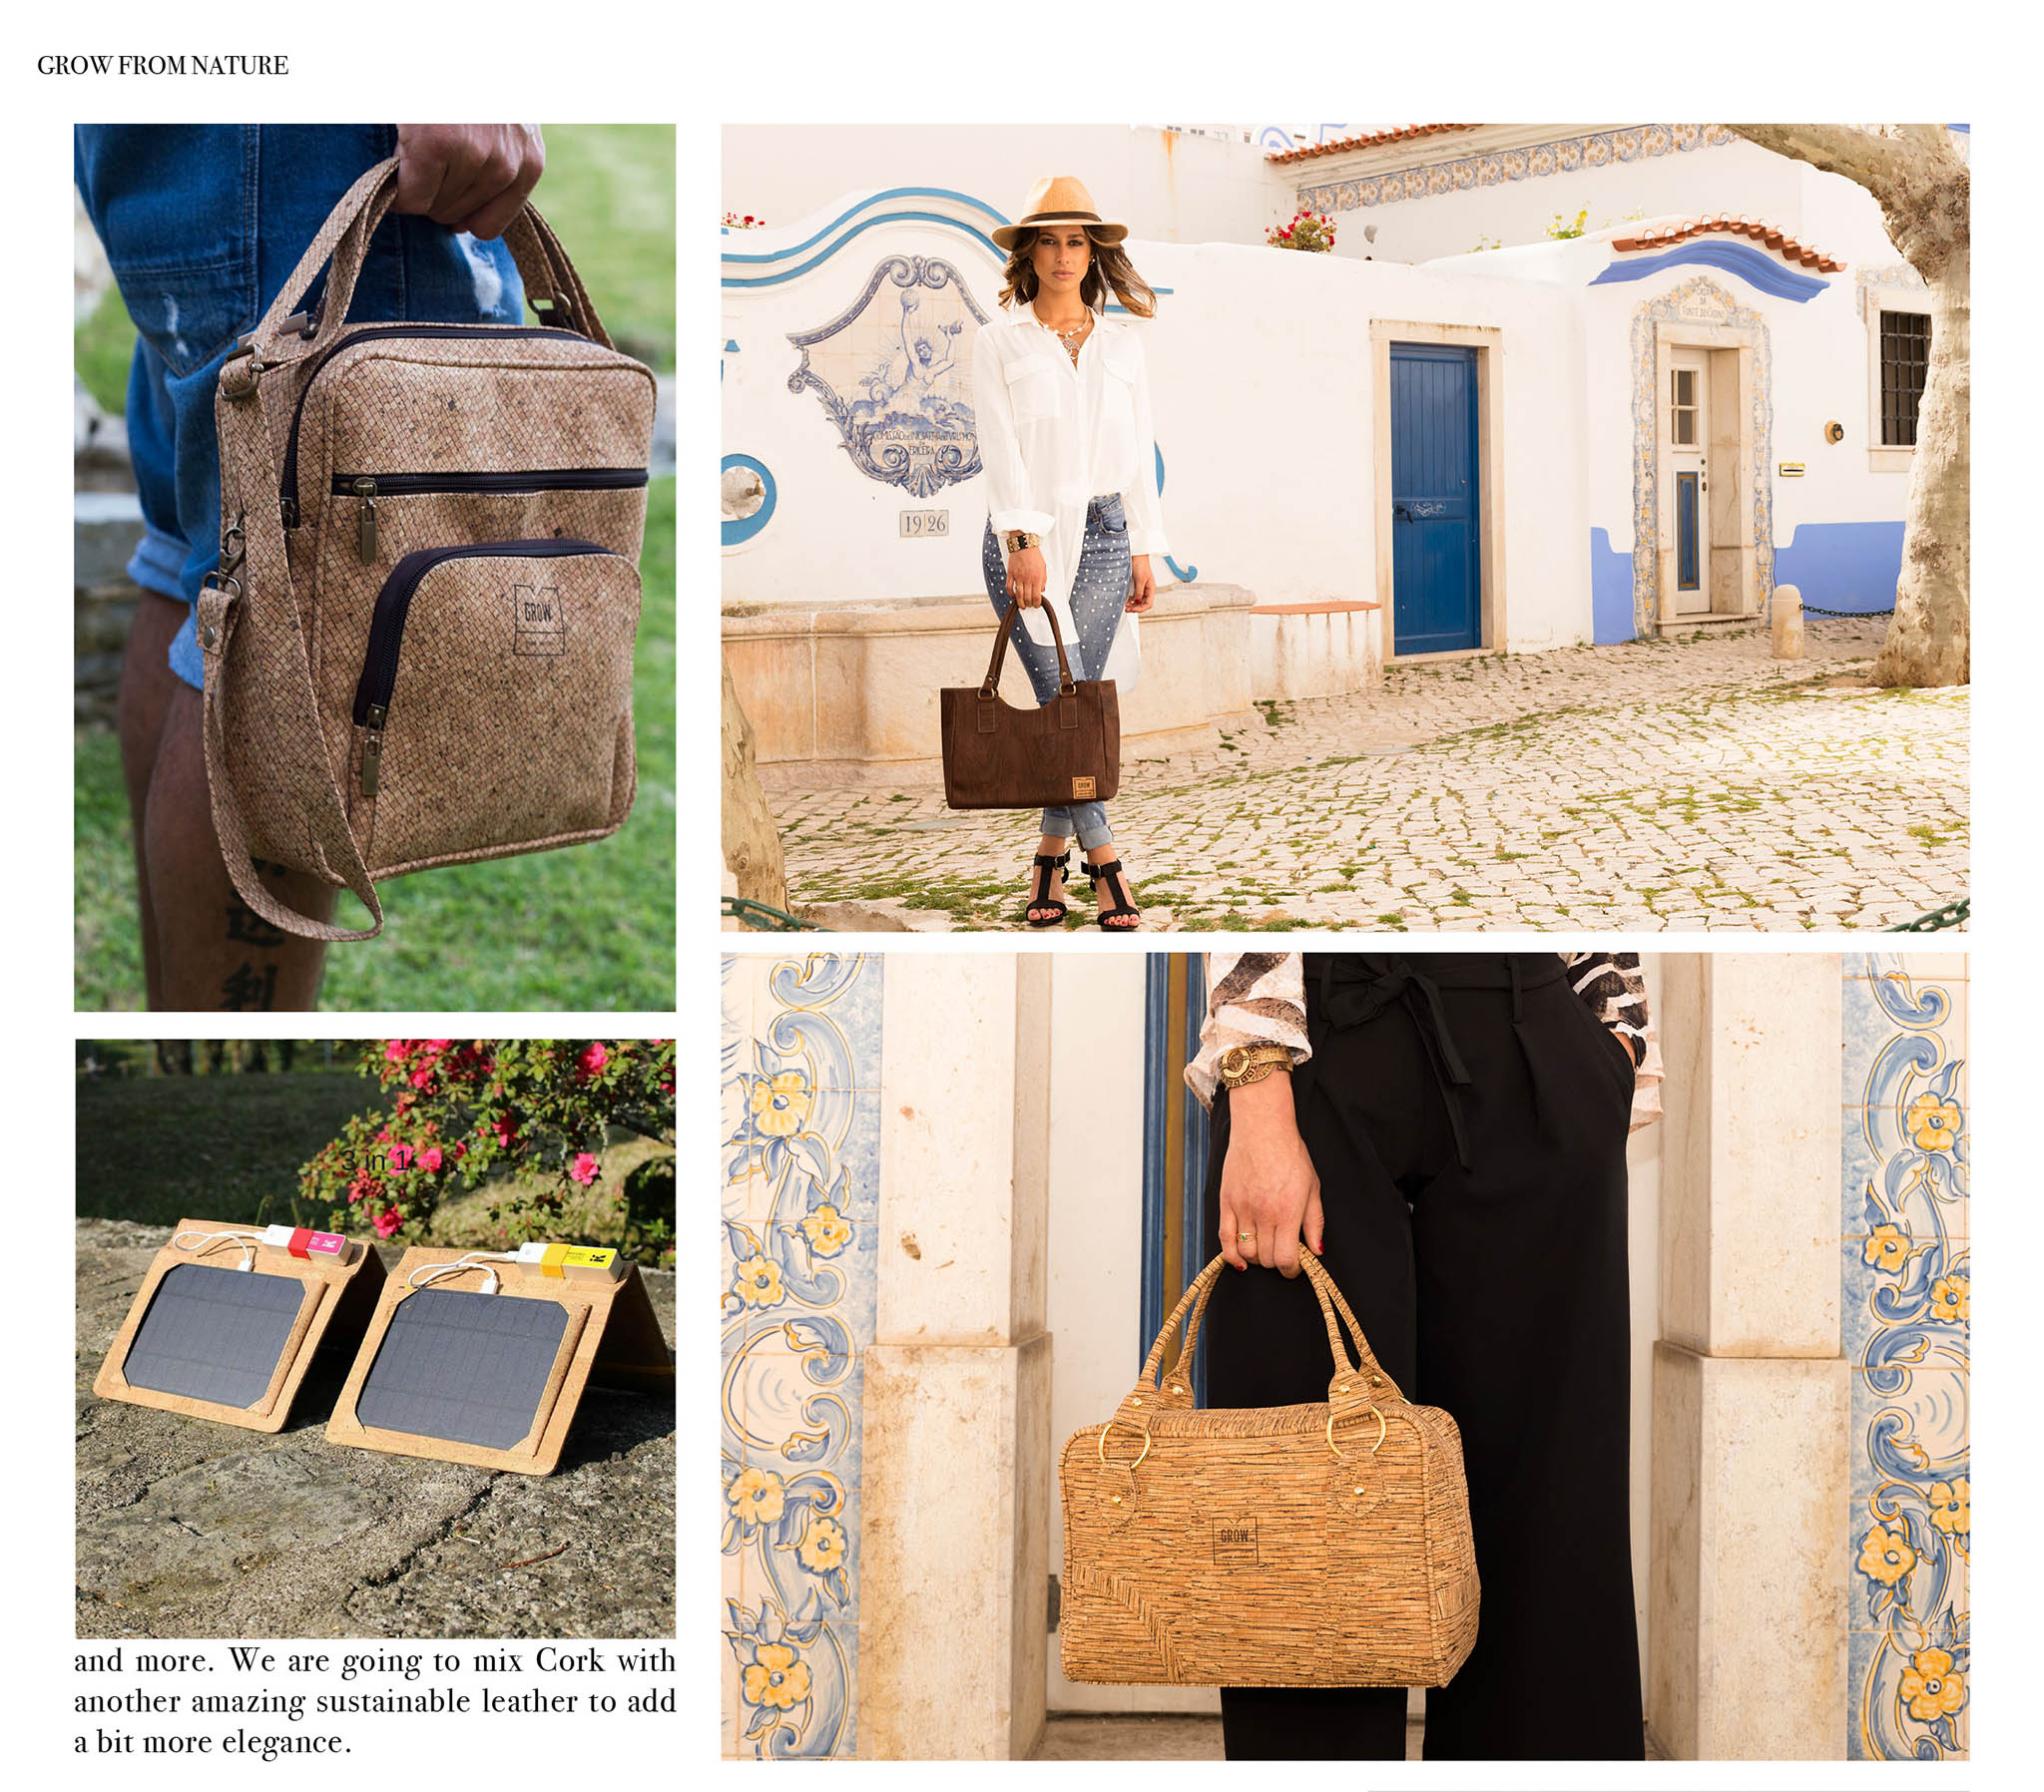 accessories made of cork grow from